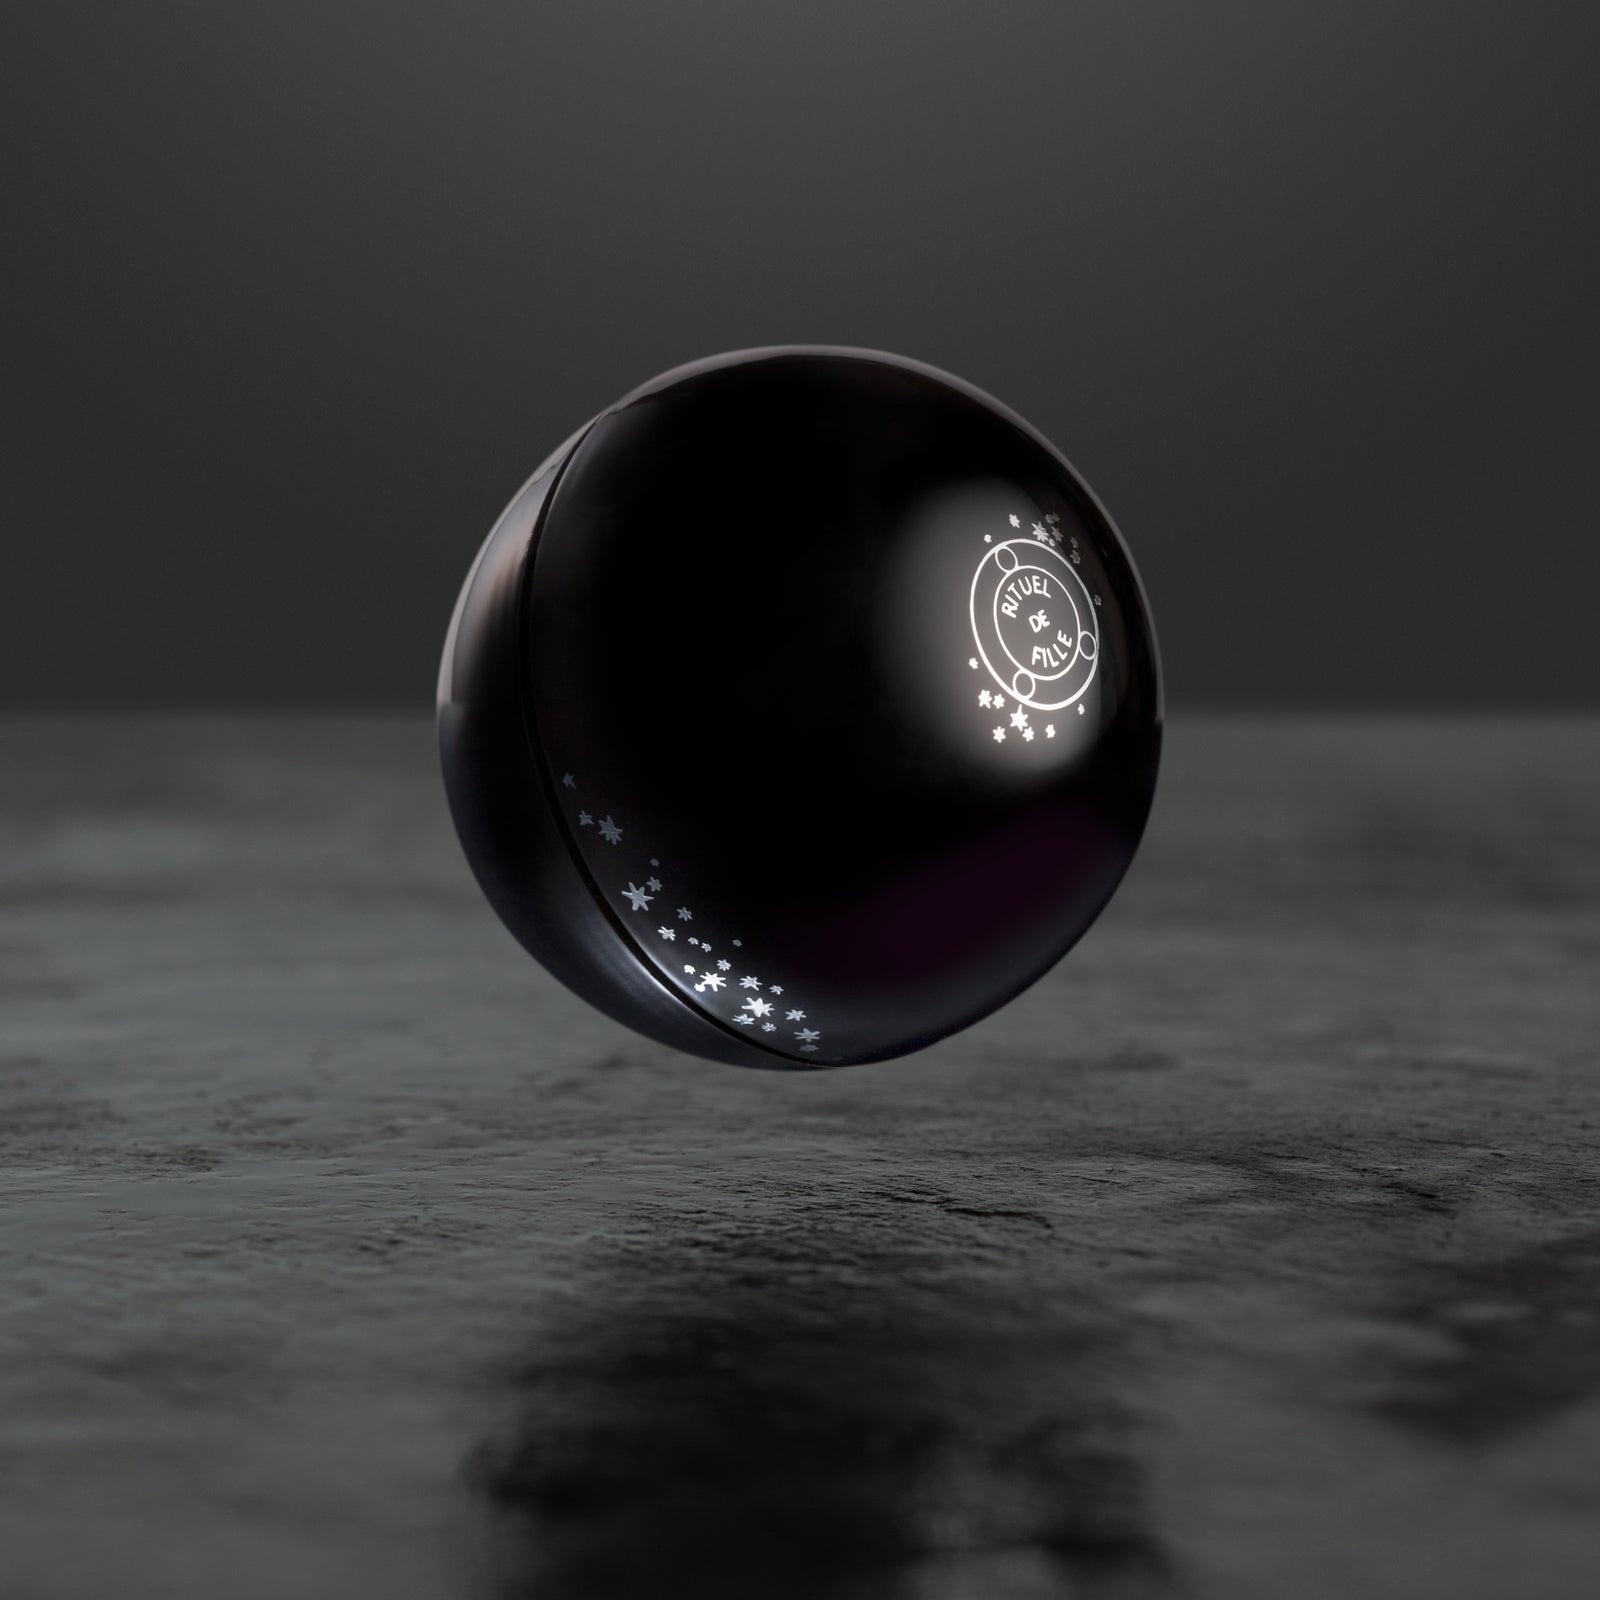 Abyss | The Black Orb Enigmatic Kohl Eyeliner - Rituel de Fille